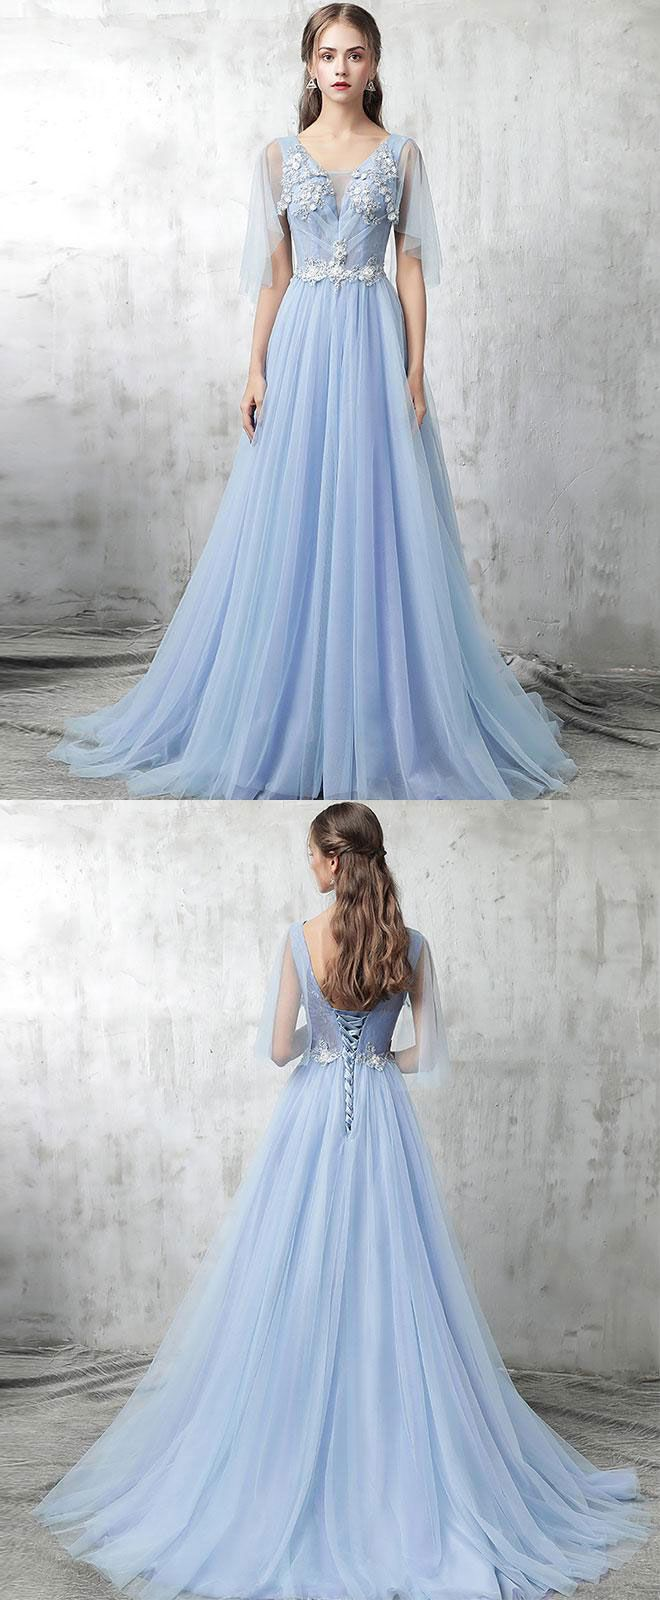 Blue v neck tulle lace applique long prom dress, blue evening dress, blue formal dresses